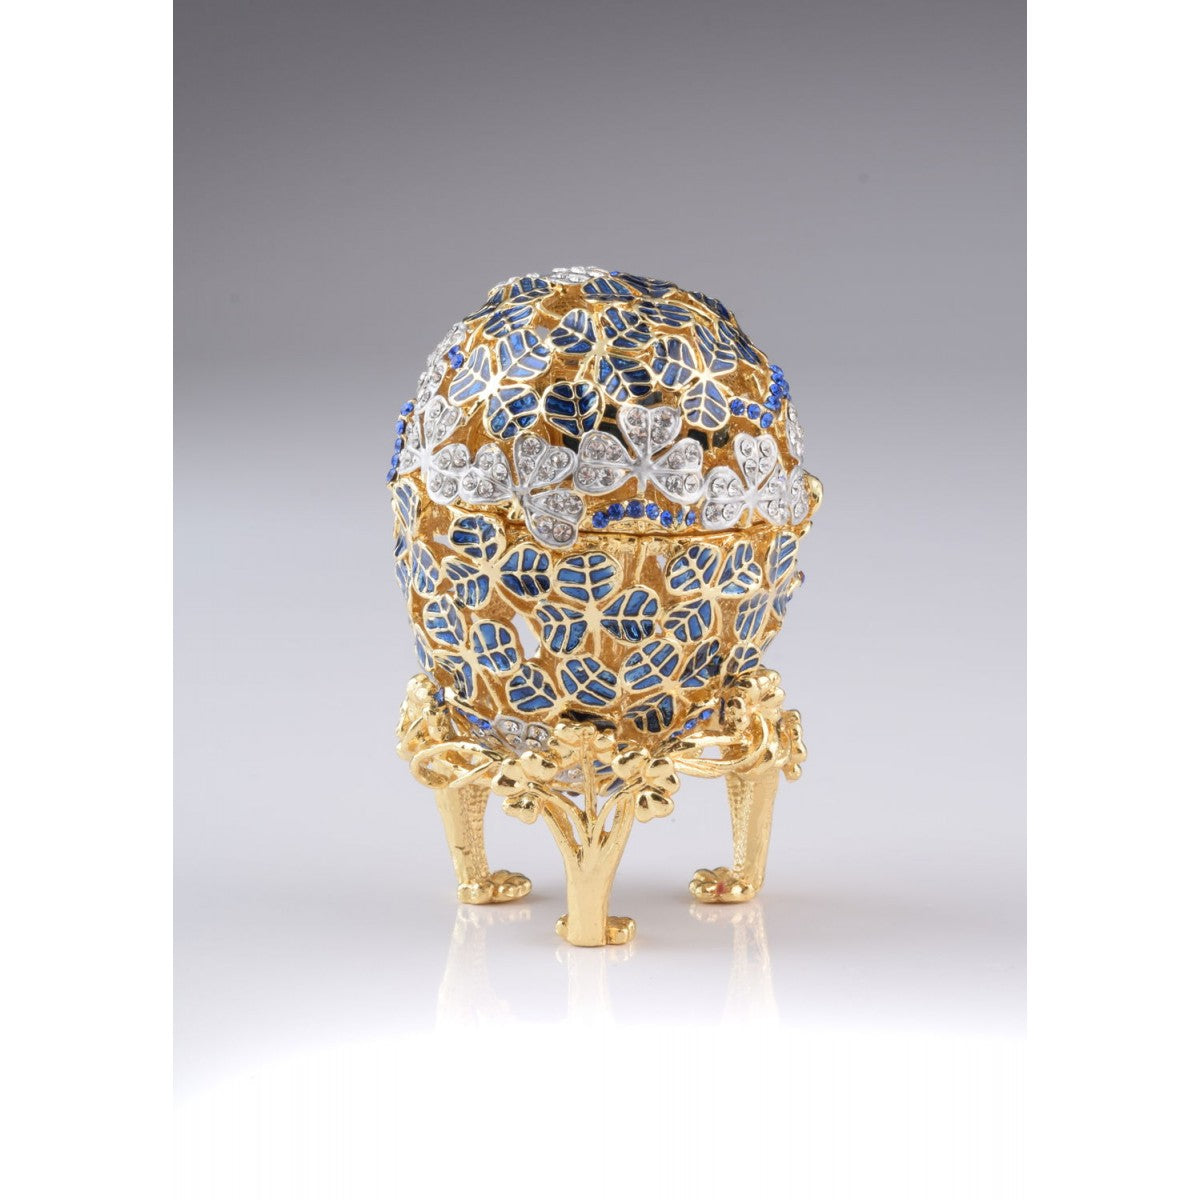 Blue Faberge Egg with Car Inside